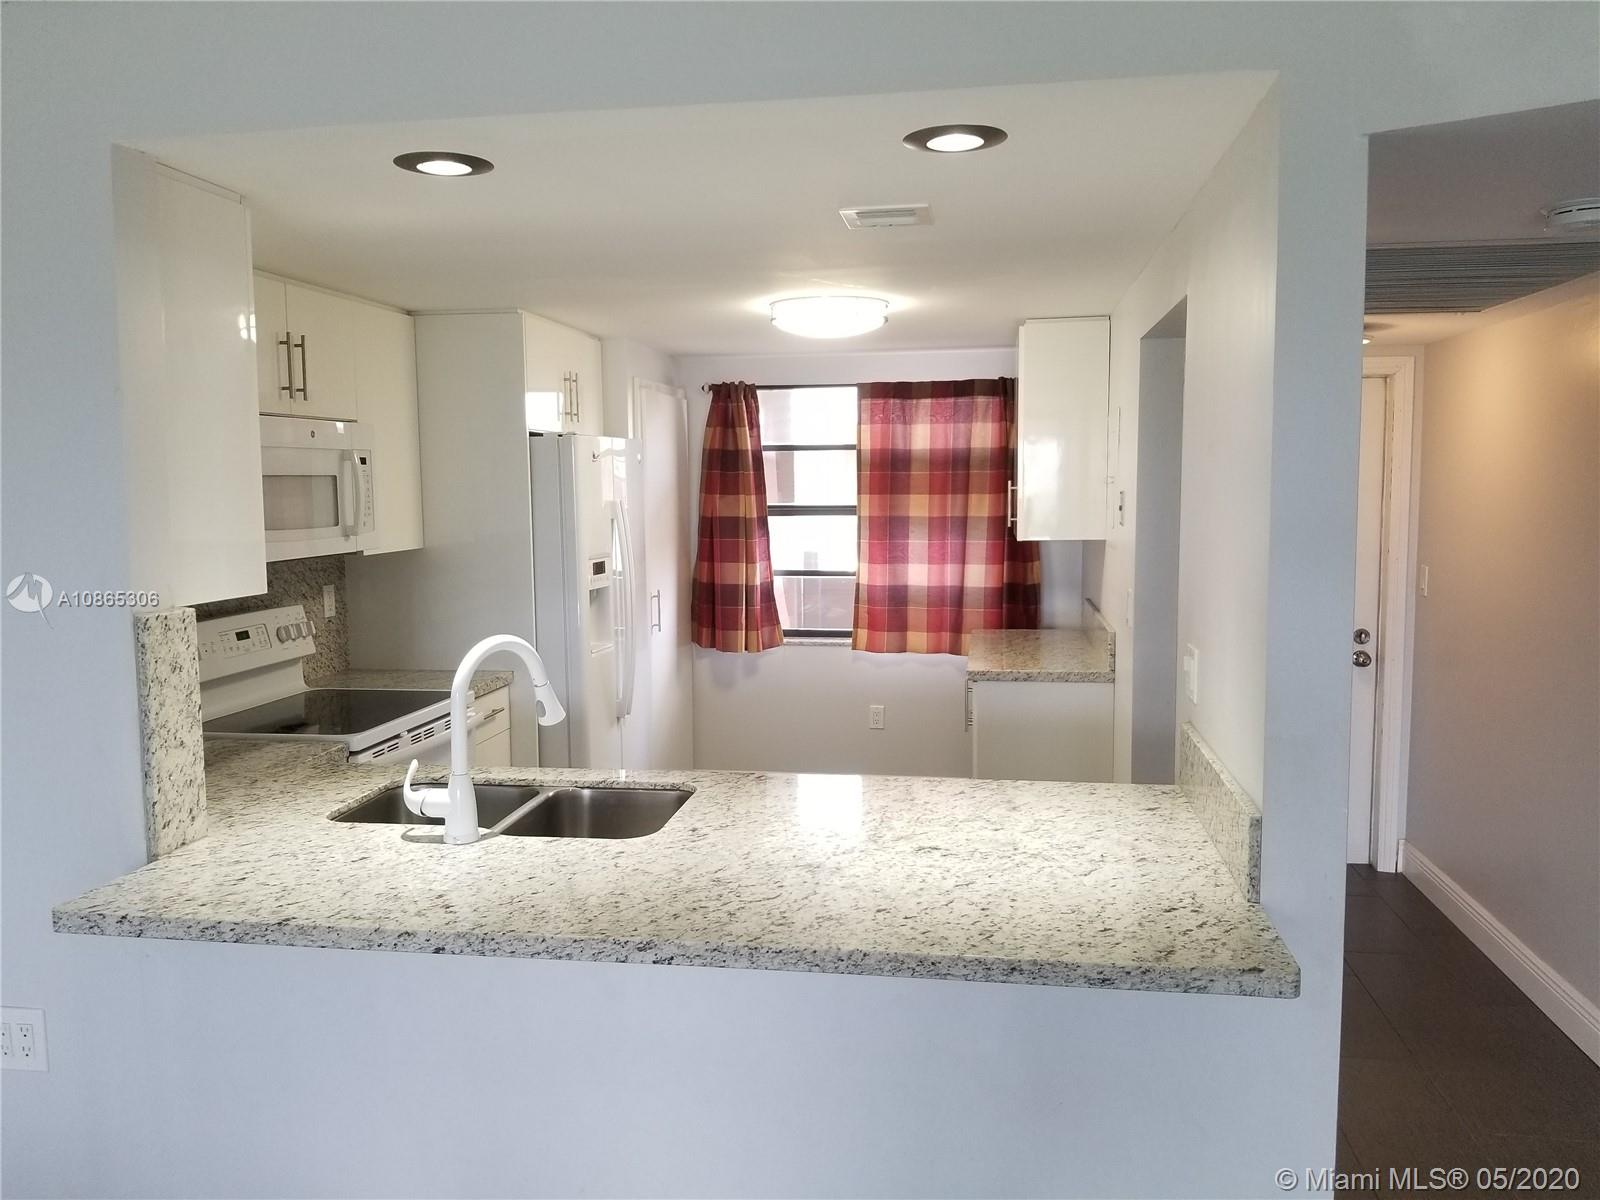 Move in Ready. Seller will consider selling at appraisal value for Buyer's financing purposes. 55+ community, 20% downpayment required for financing.